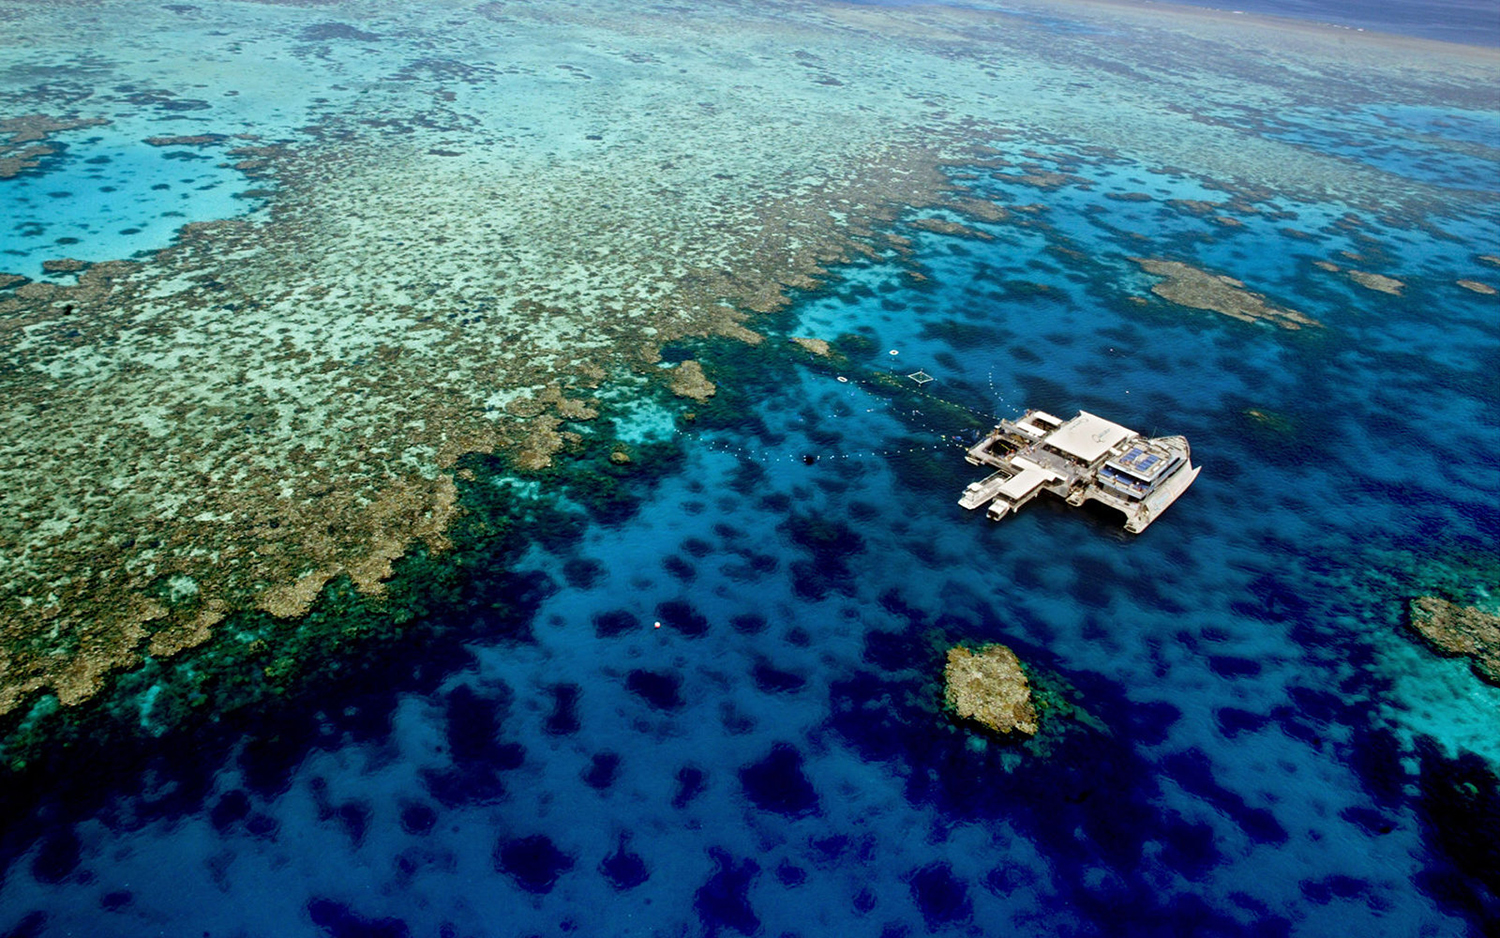 photo: The Great Barrier Reef